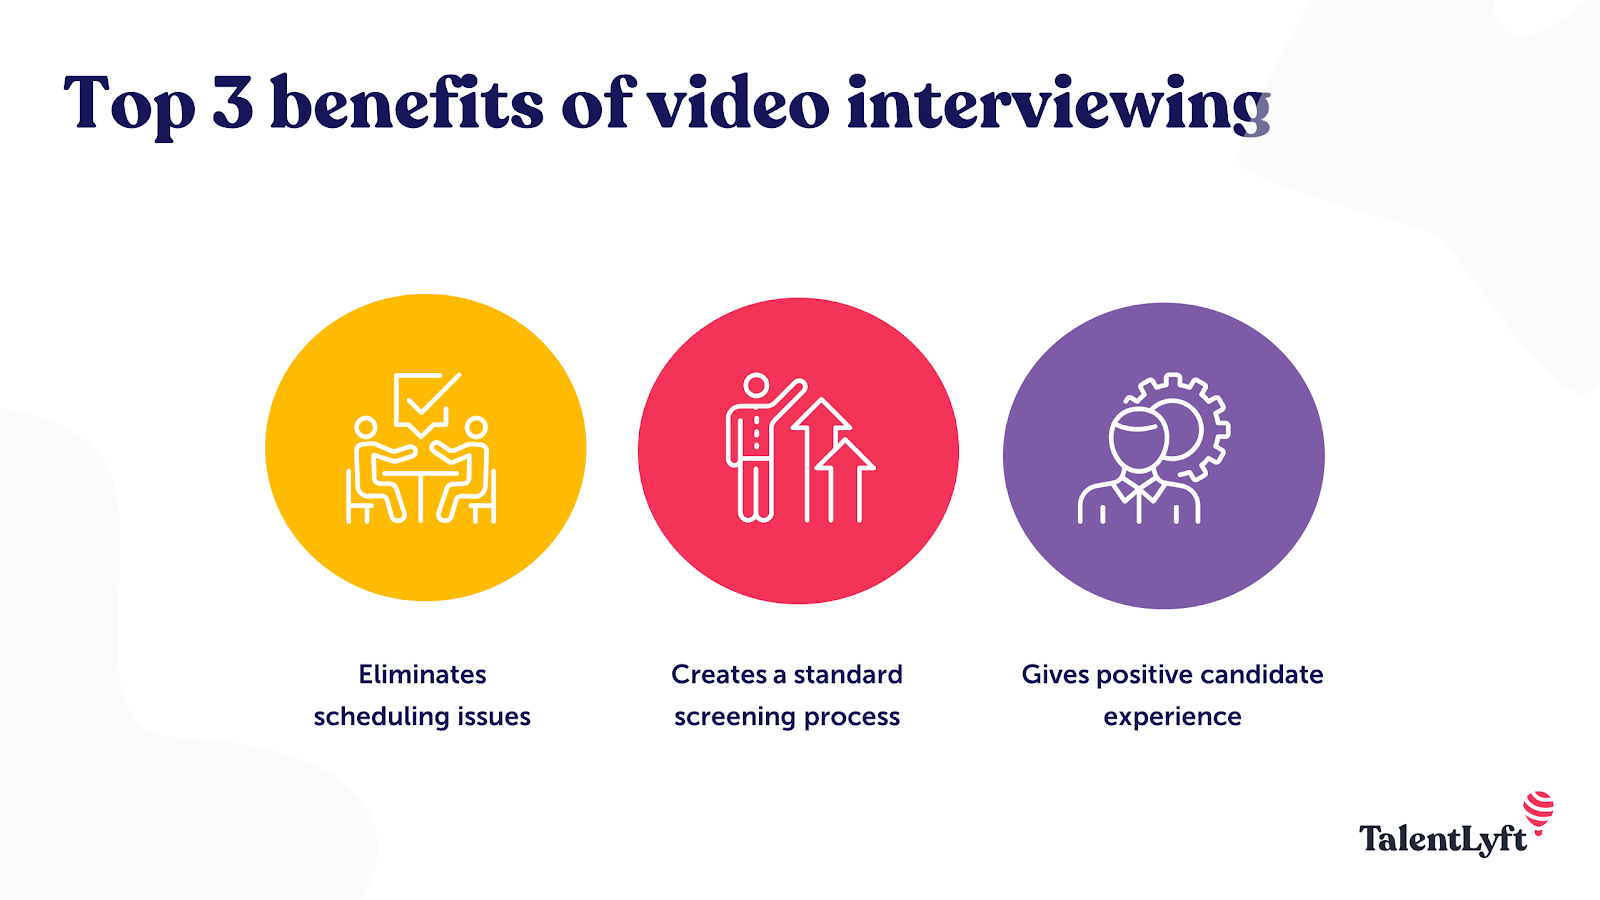 Video interviewing benefits